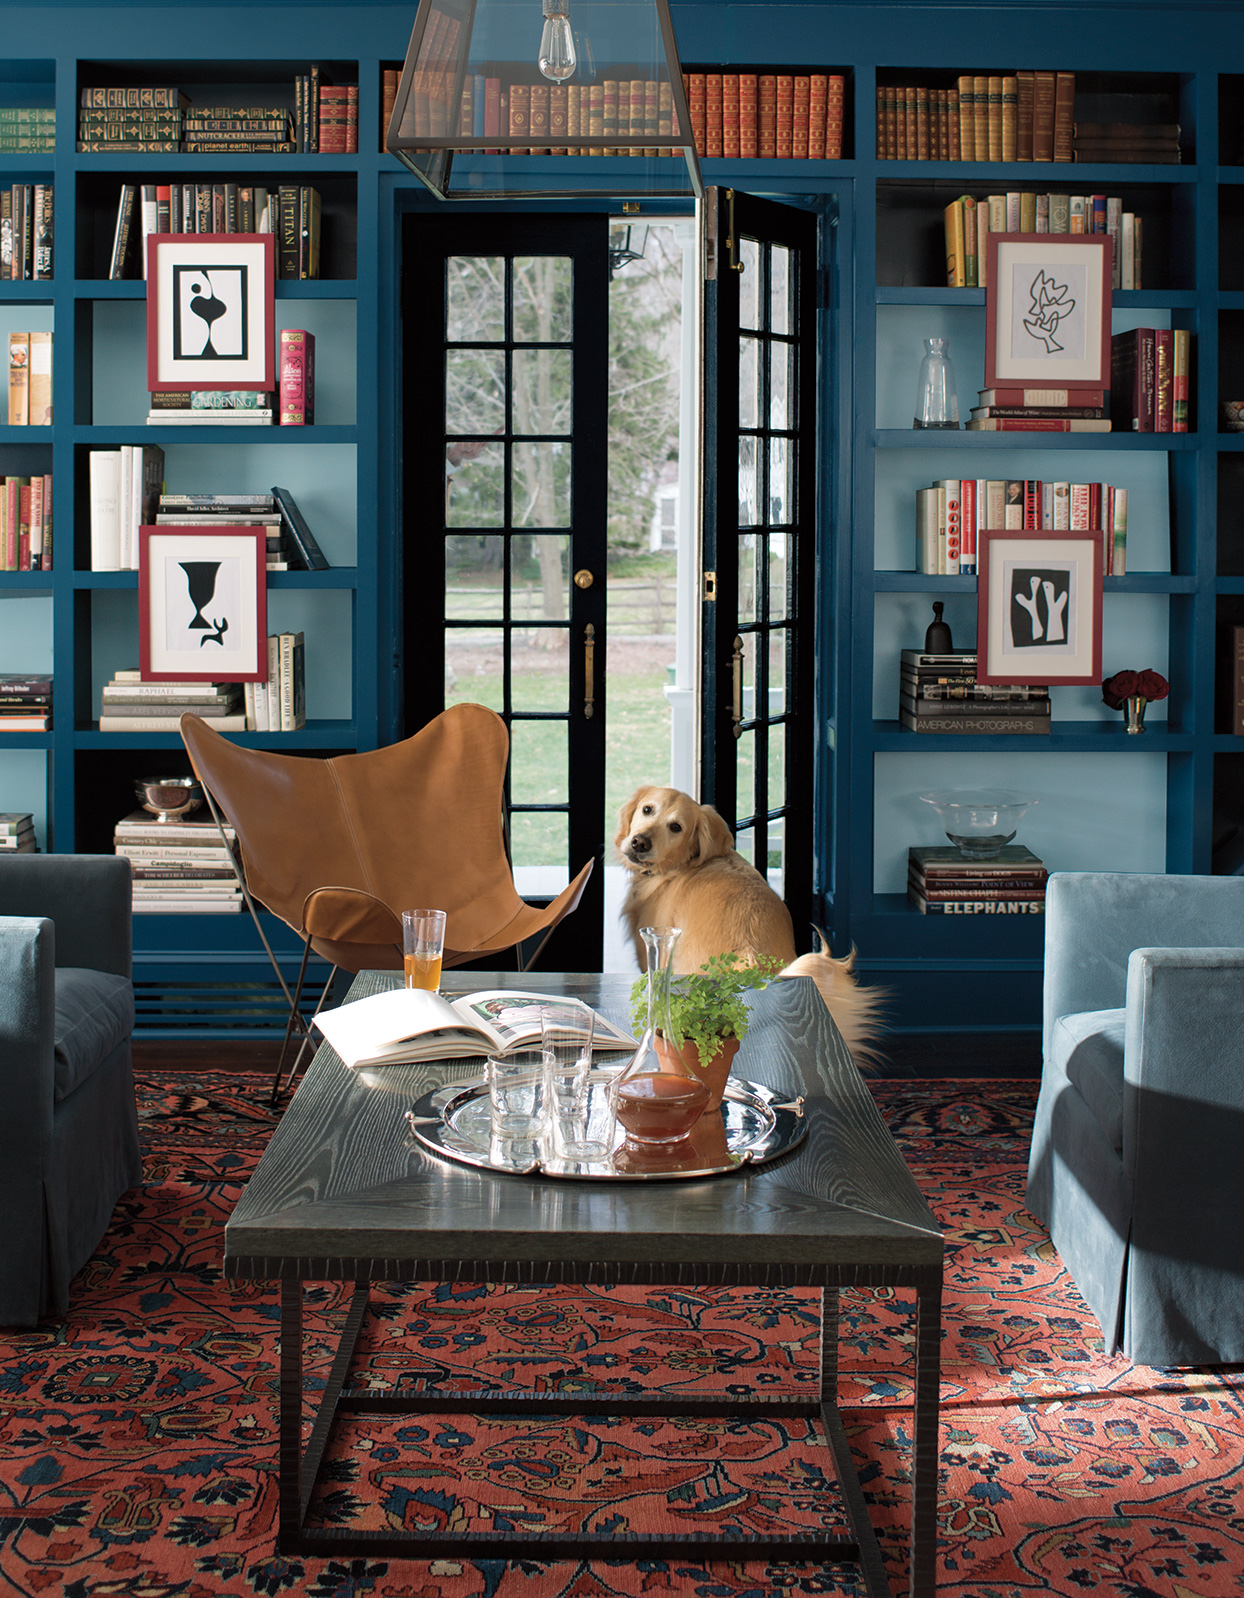 tonal blues and red library with dog